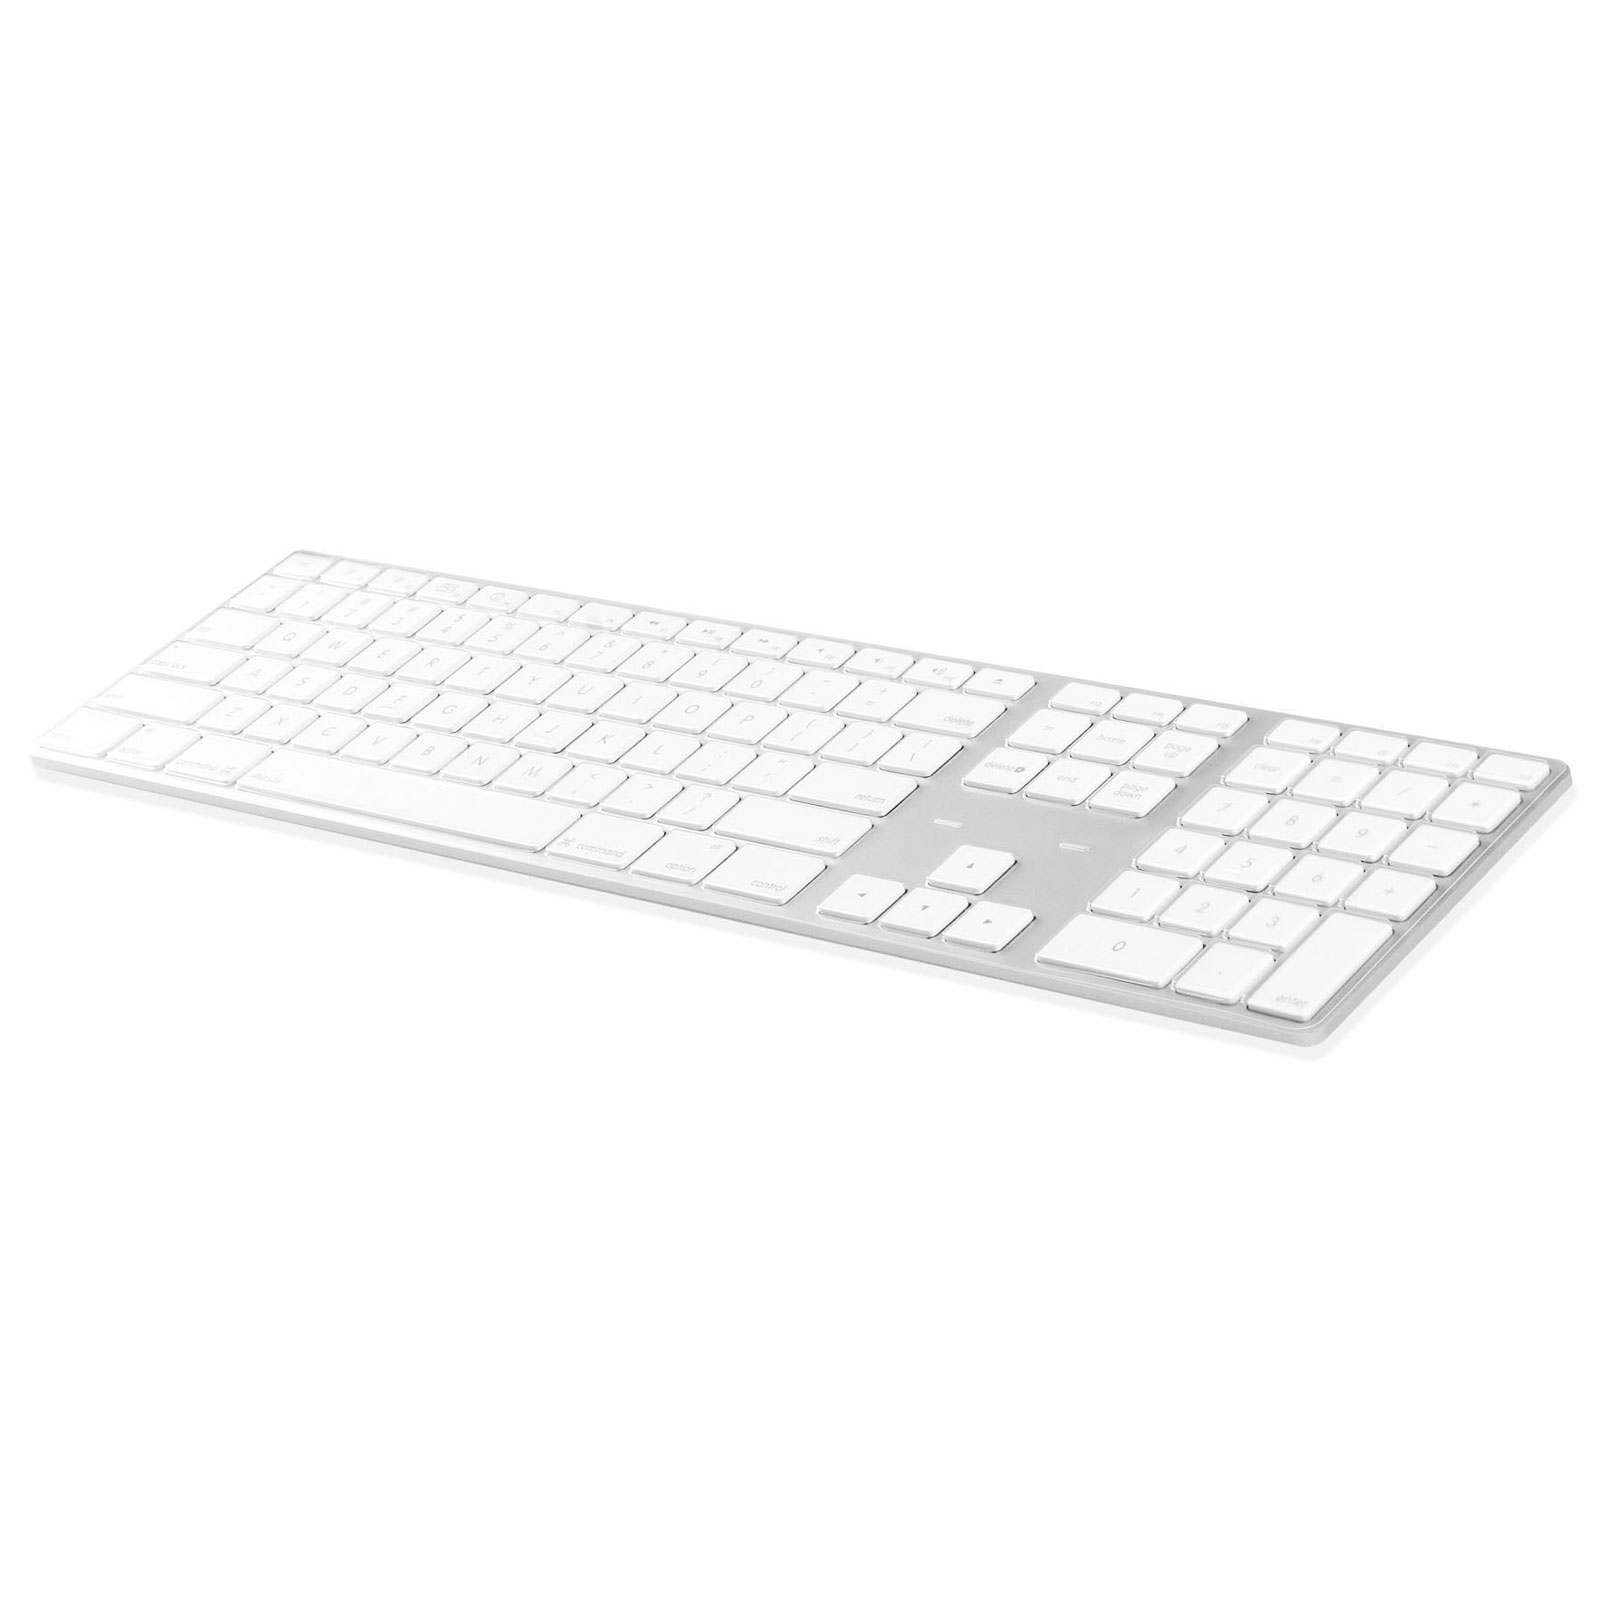 imac keyboard protector us